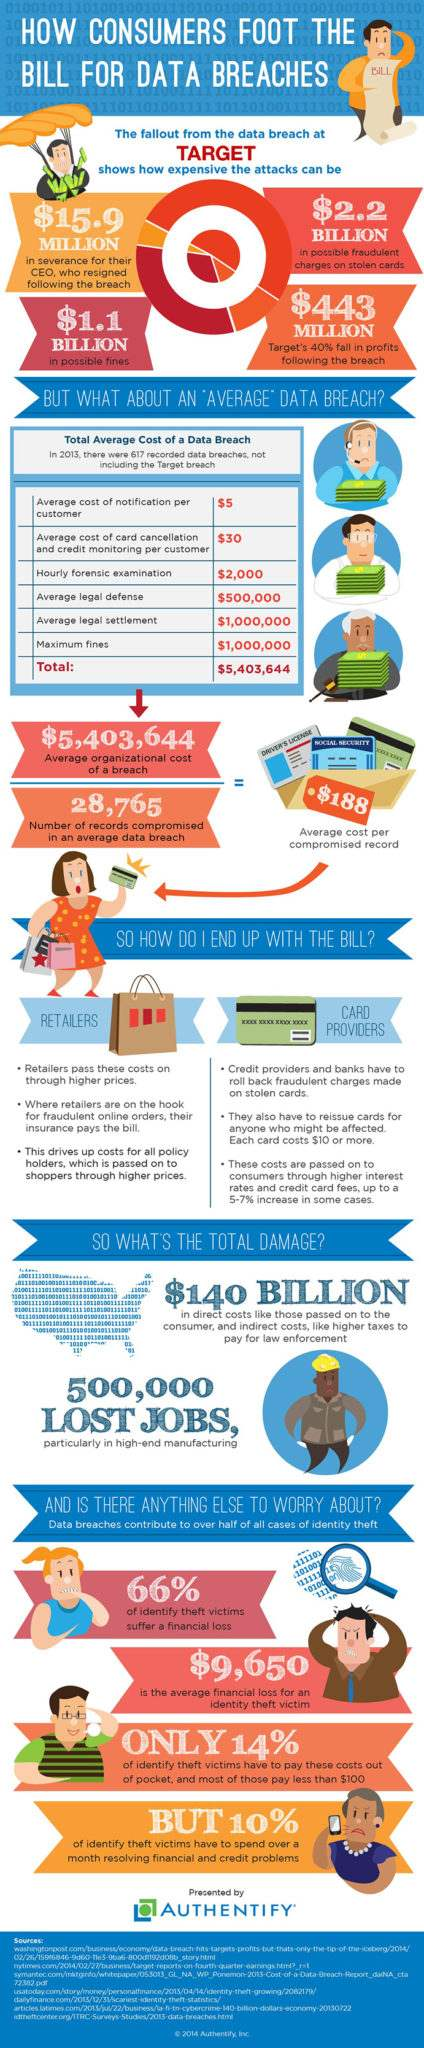 Authentify infographic _target data breach